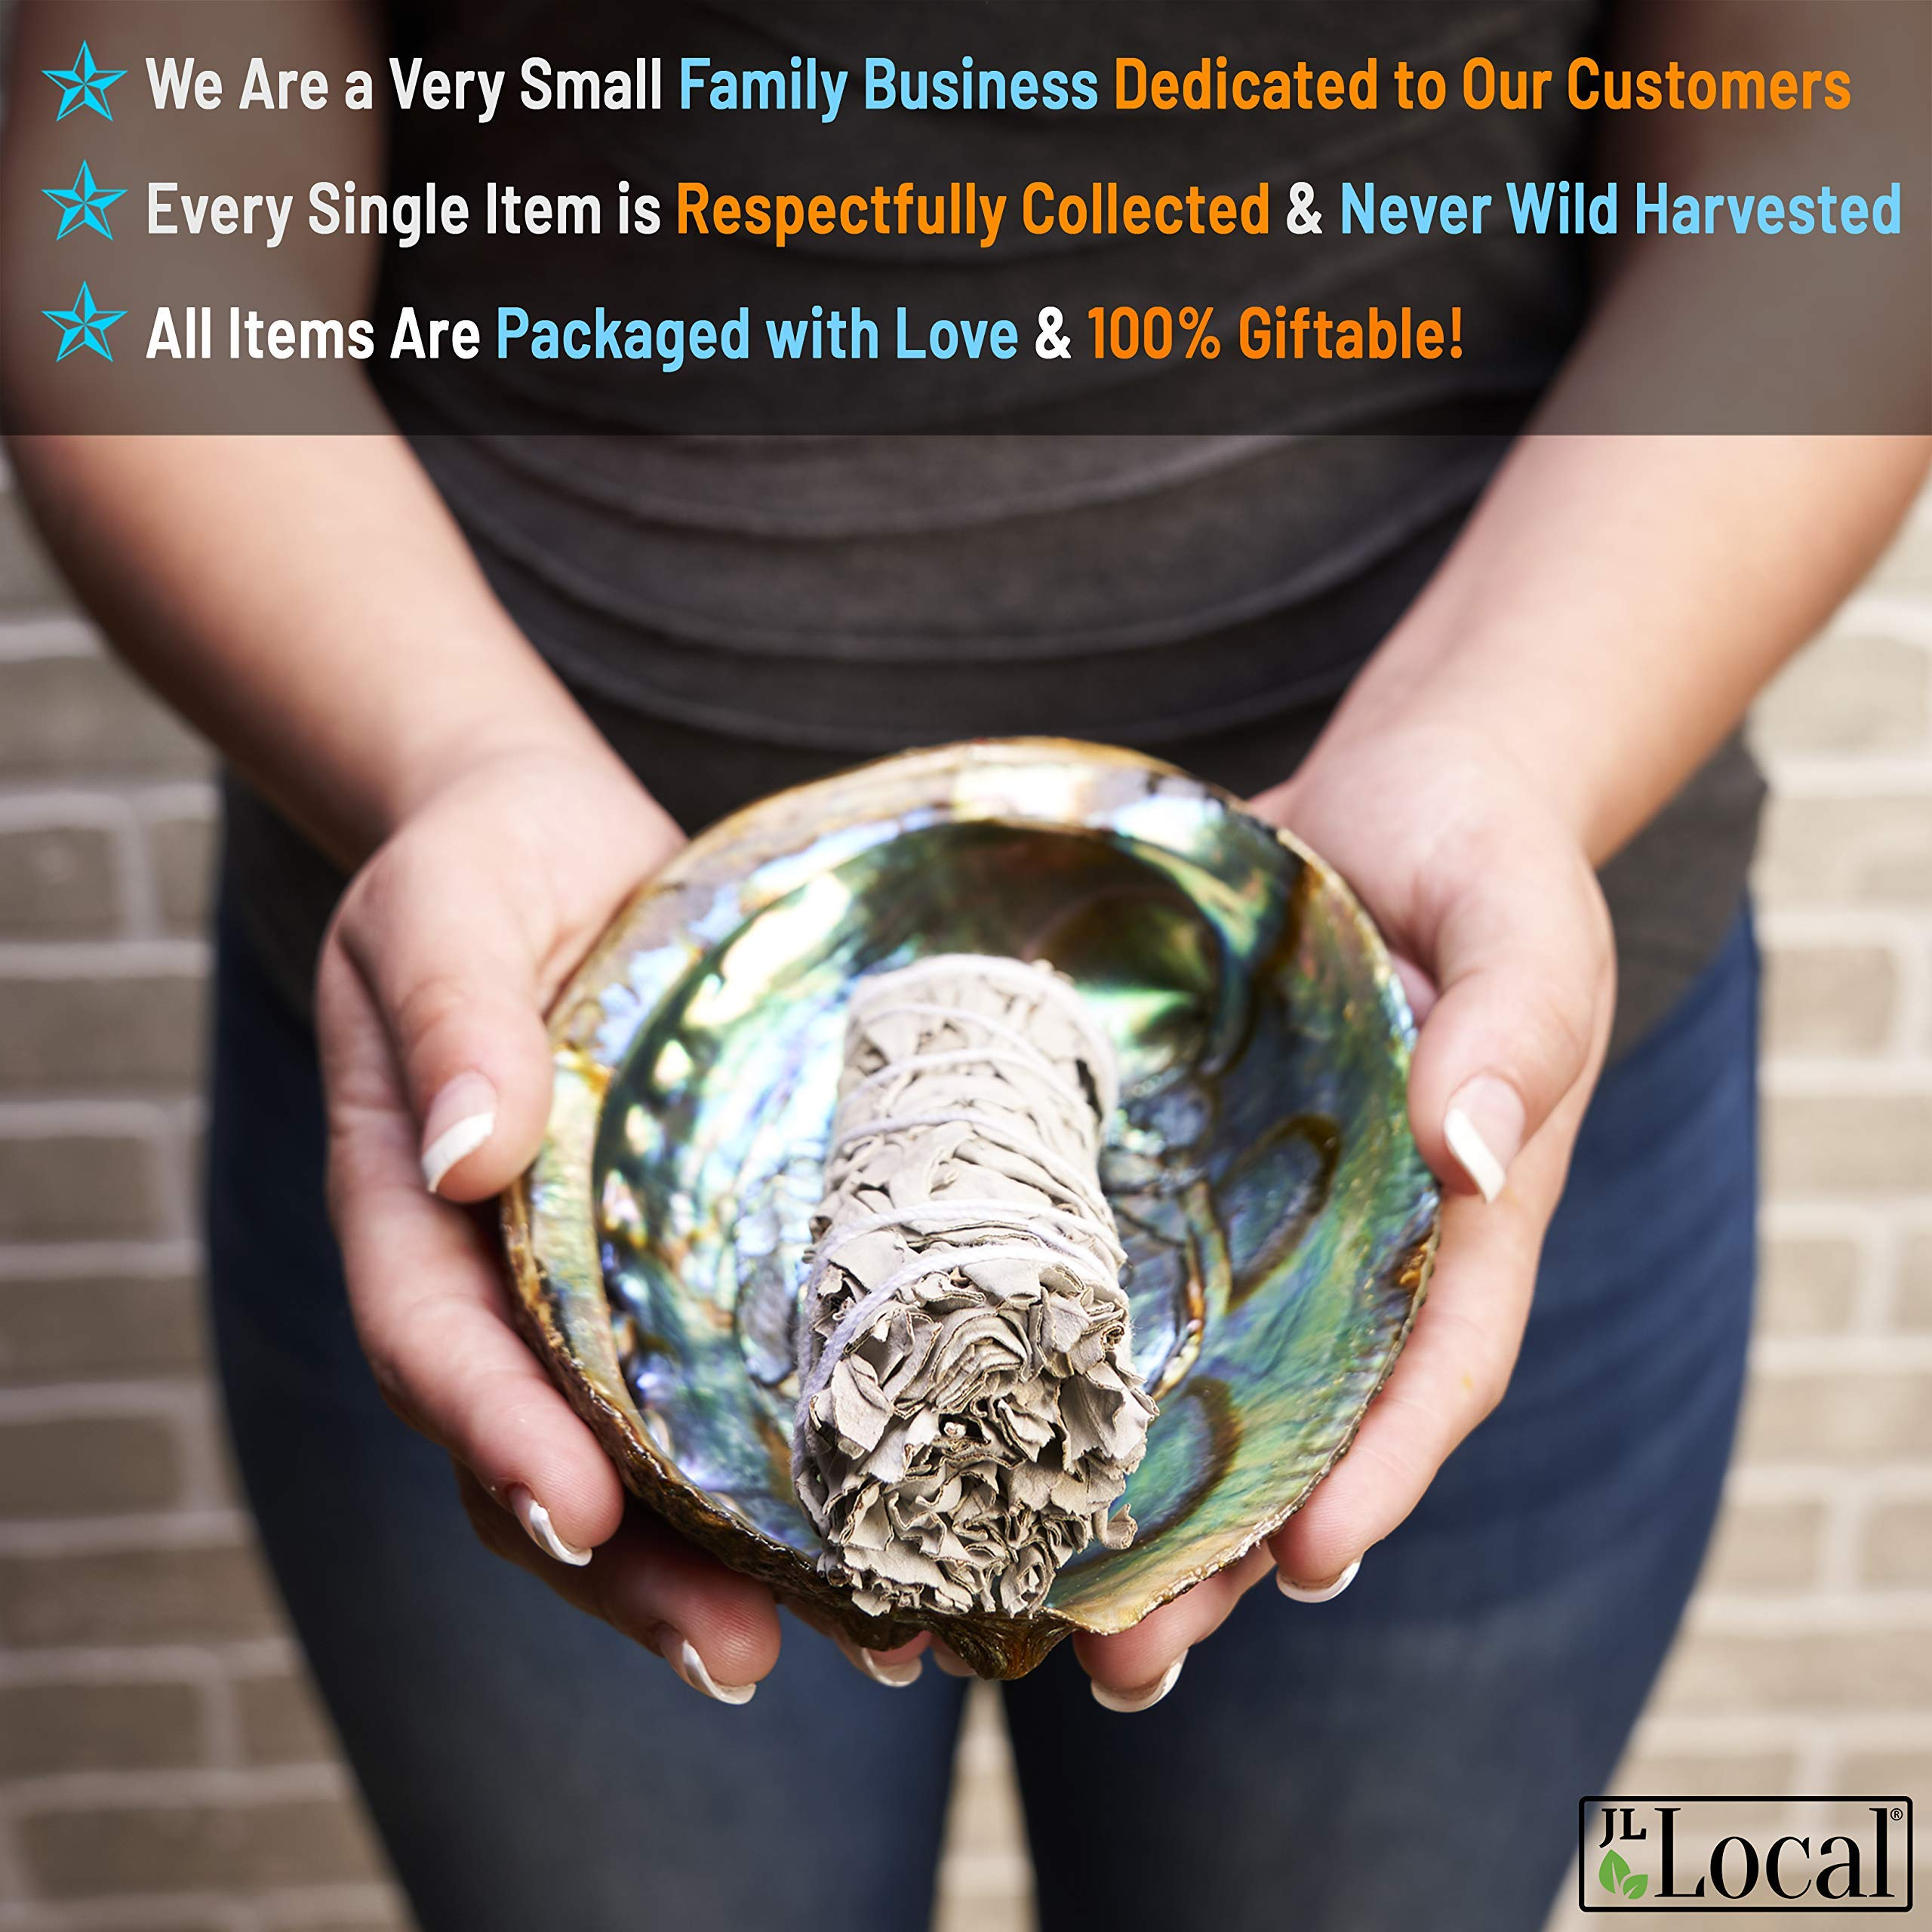 JL Local 3 White Sage Smudge Gift Kit - Abalone Shell, Feather, Stand, Instructions & More - Smudging, Cleansing, Healing & Stress Relief by JL Local (Image #6)